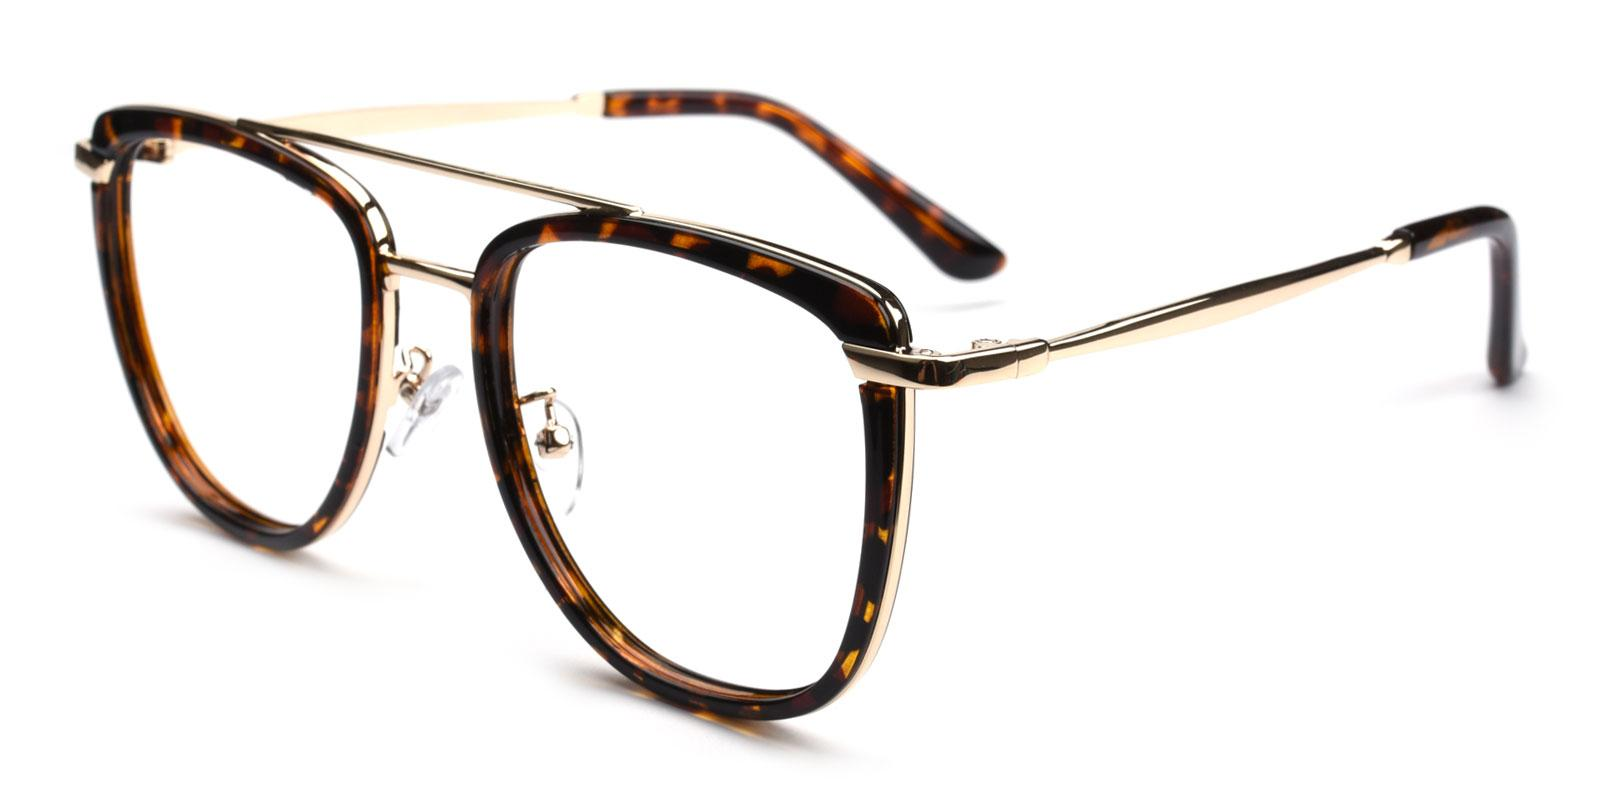 Bid-Leopard-Aviator-Combination-Eyeglasses-additional1